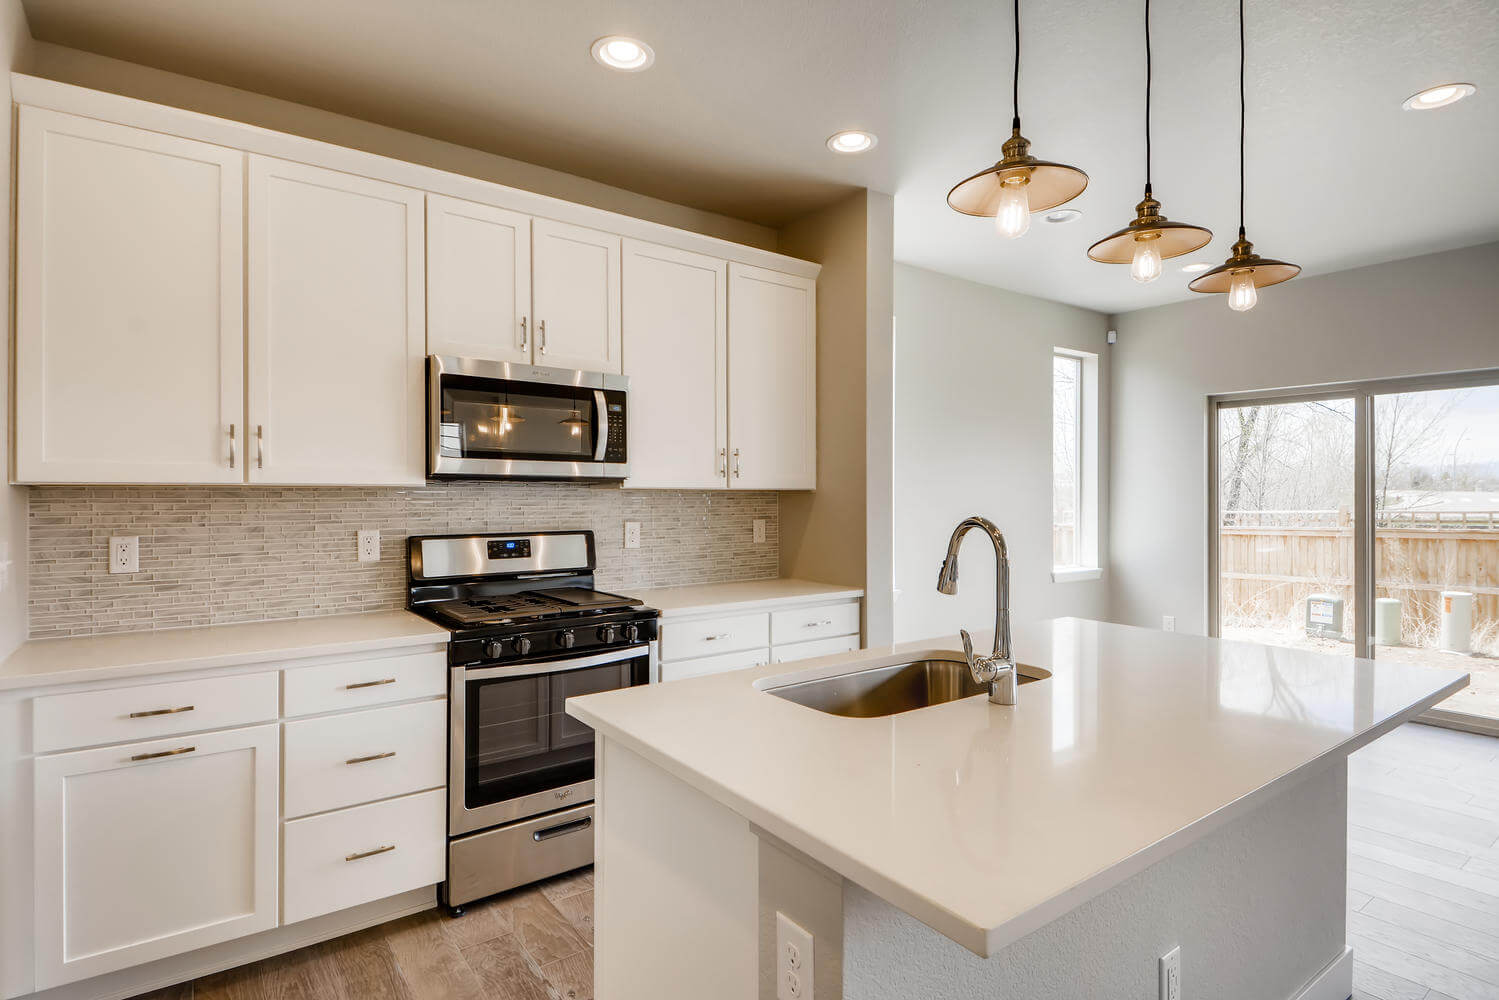 New Denver Single Family Home Quick Possession Aero in Westminster Station, located at 6887 Eliot Street Built By Cardel Homes Denver